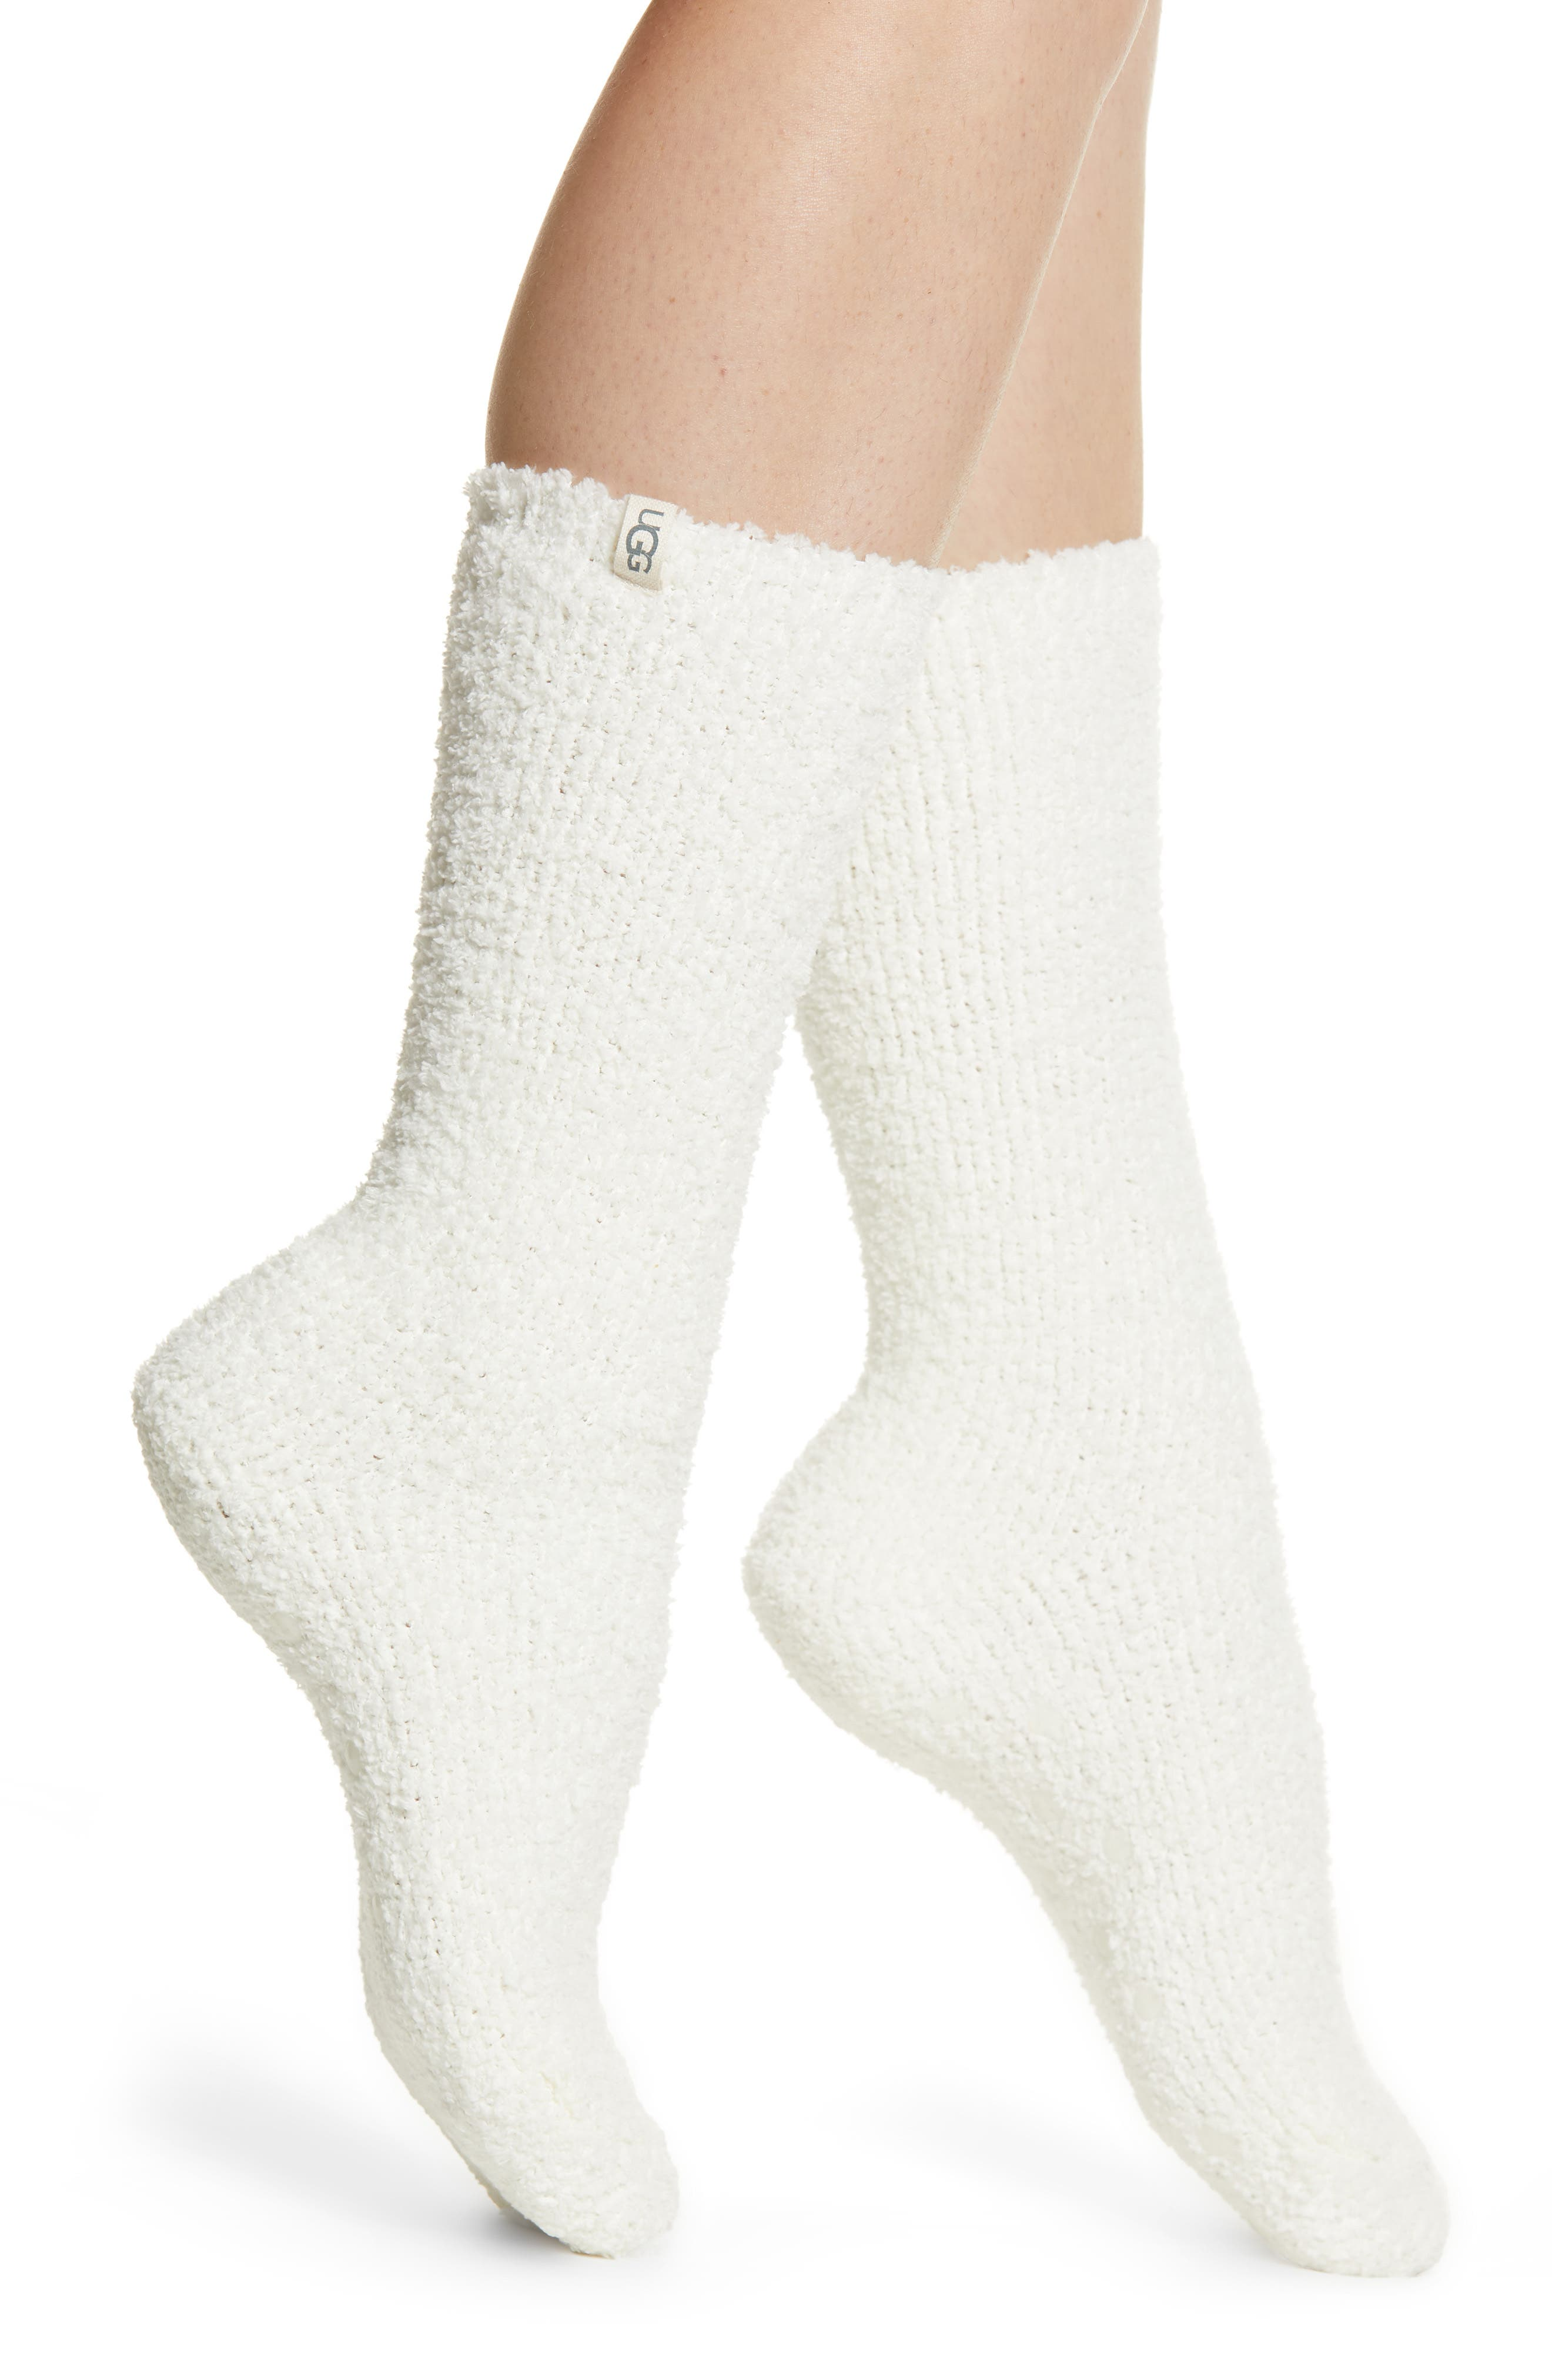 Your feet will thank you when they dive into these nonslip gripper socks knit that are supersoft and cozy to the max. Style Name: UGG Alice Cozy Gripper Socks. Style Number: 5877154. Available in stores.